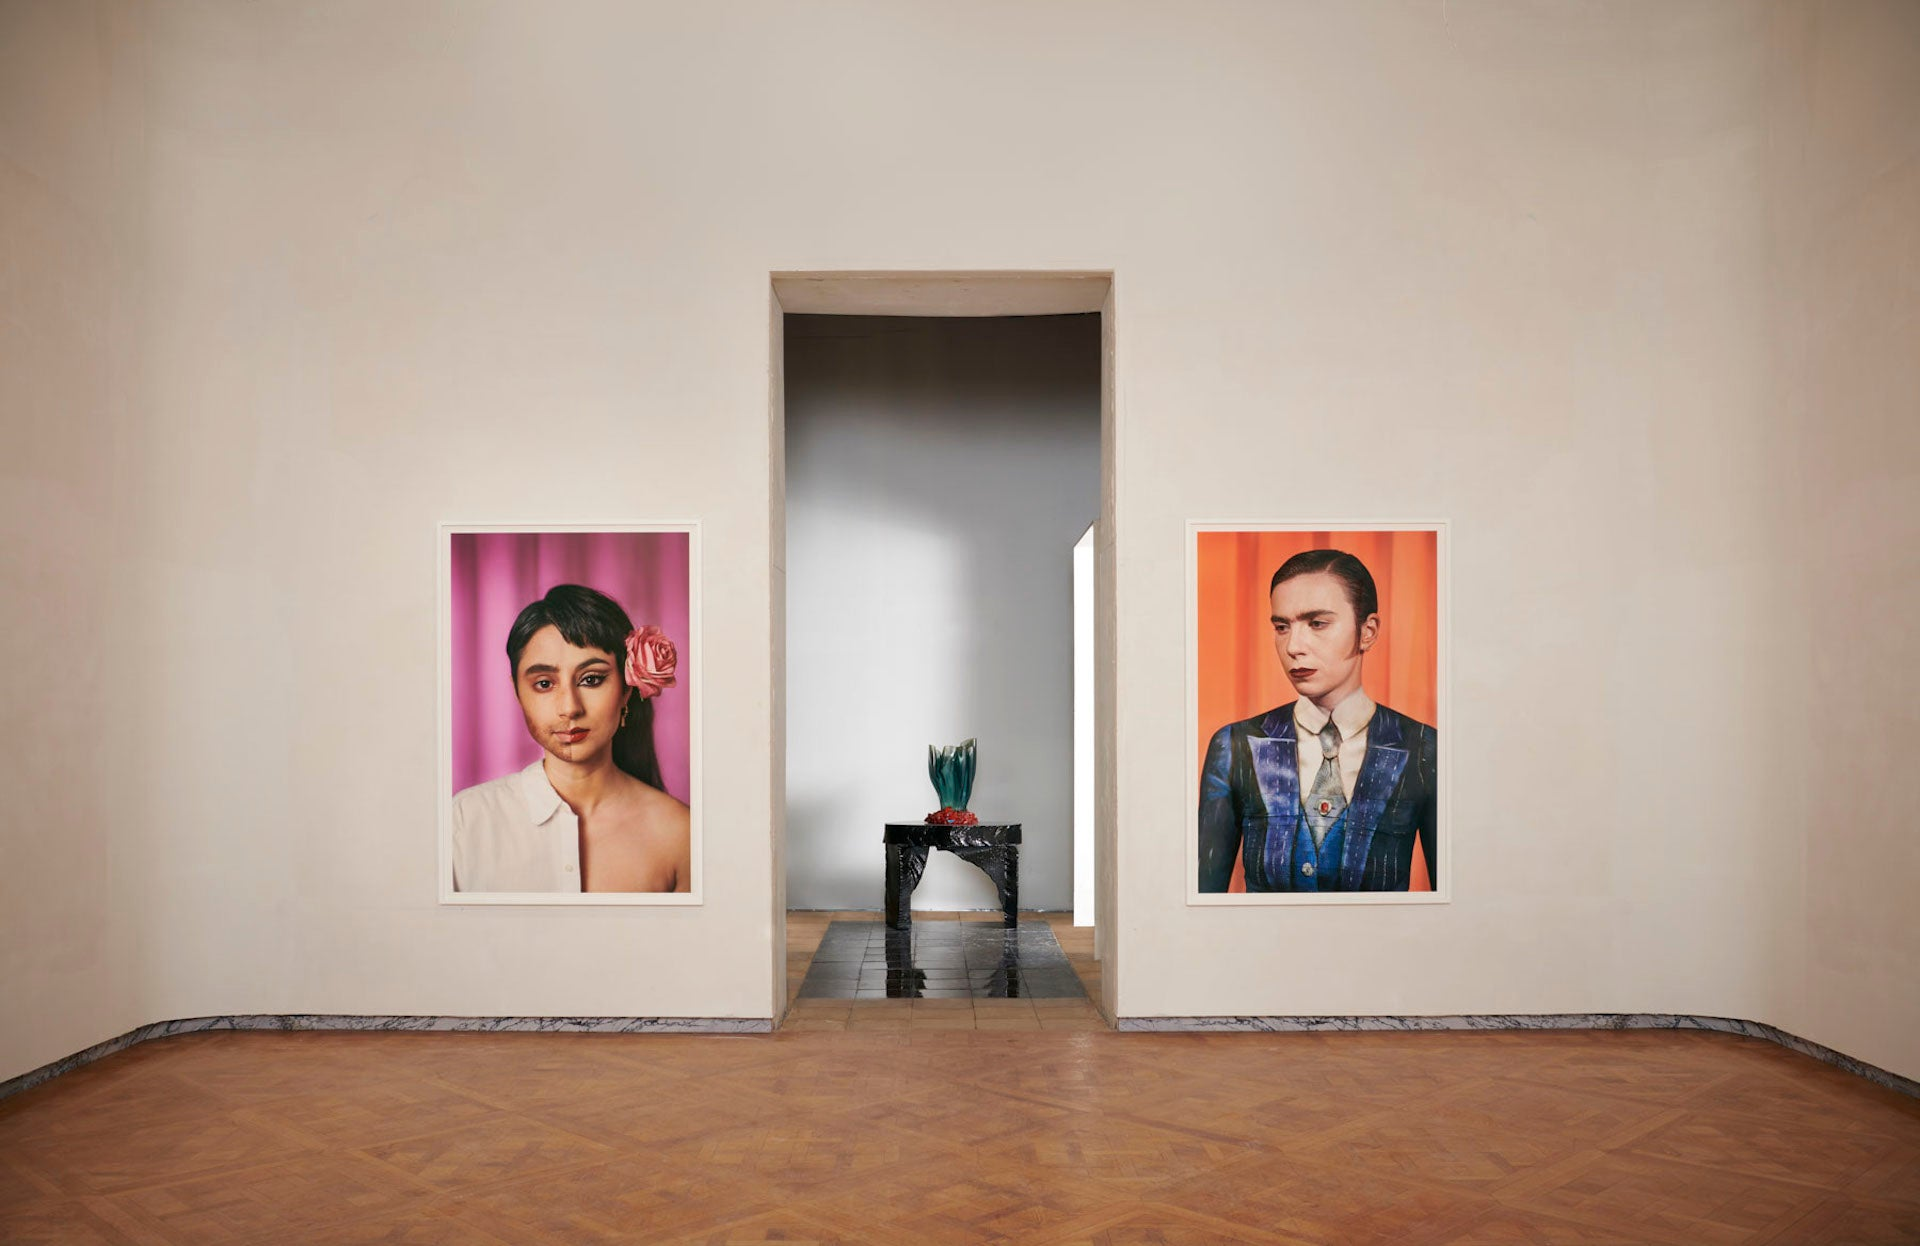 Work by Laurie Simmons and Gaetano Pesce at Salon 94. Photo courtesy of Salon 94